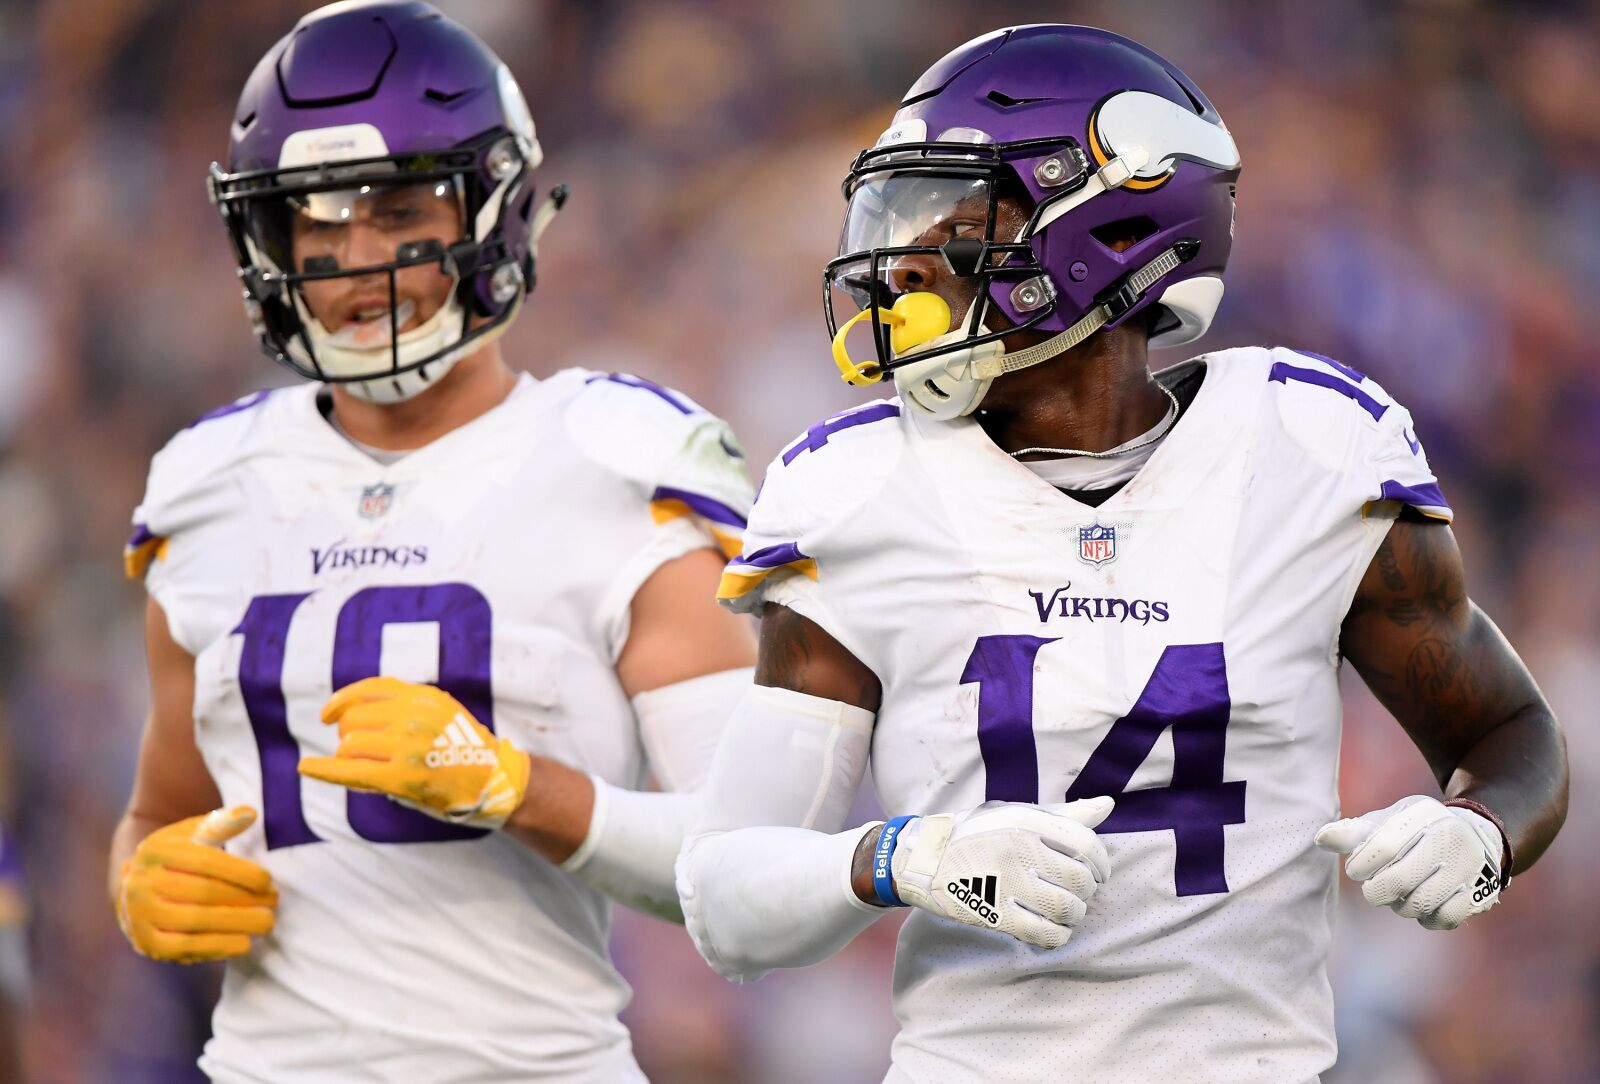 Lions vs. Vikings: Analyst predicts secondary shuts down hot receiving duo